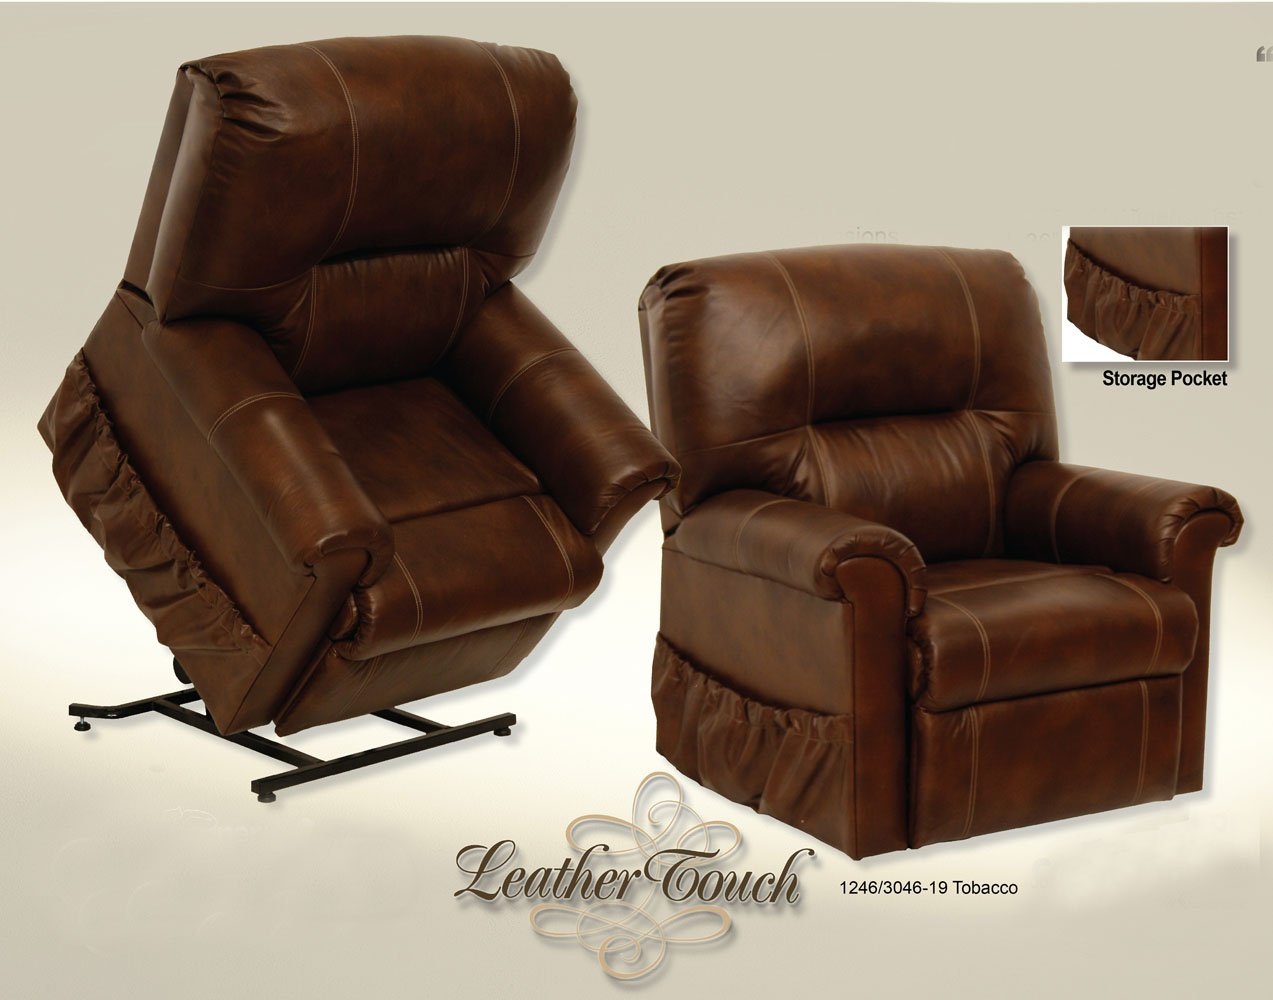 Our Best Leather Recliner Recommendation & Whatu0027s The Best Heavy Duty Recliners For Big Men Up To 500 Lbs ... islam-shia.org